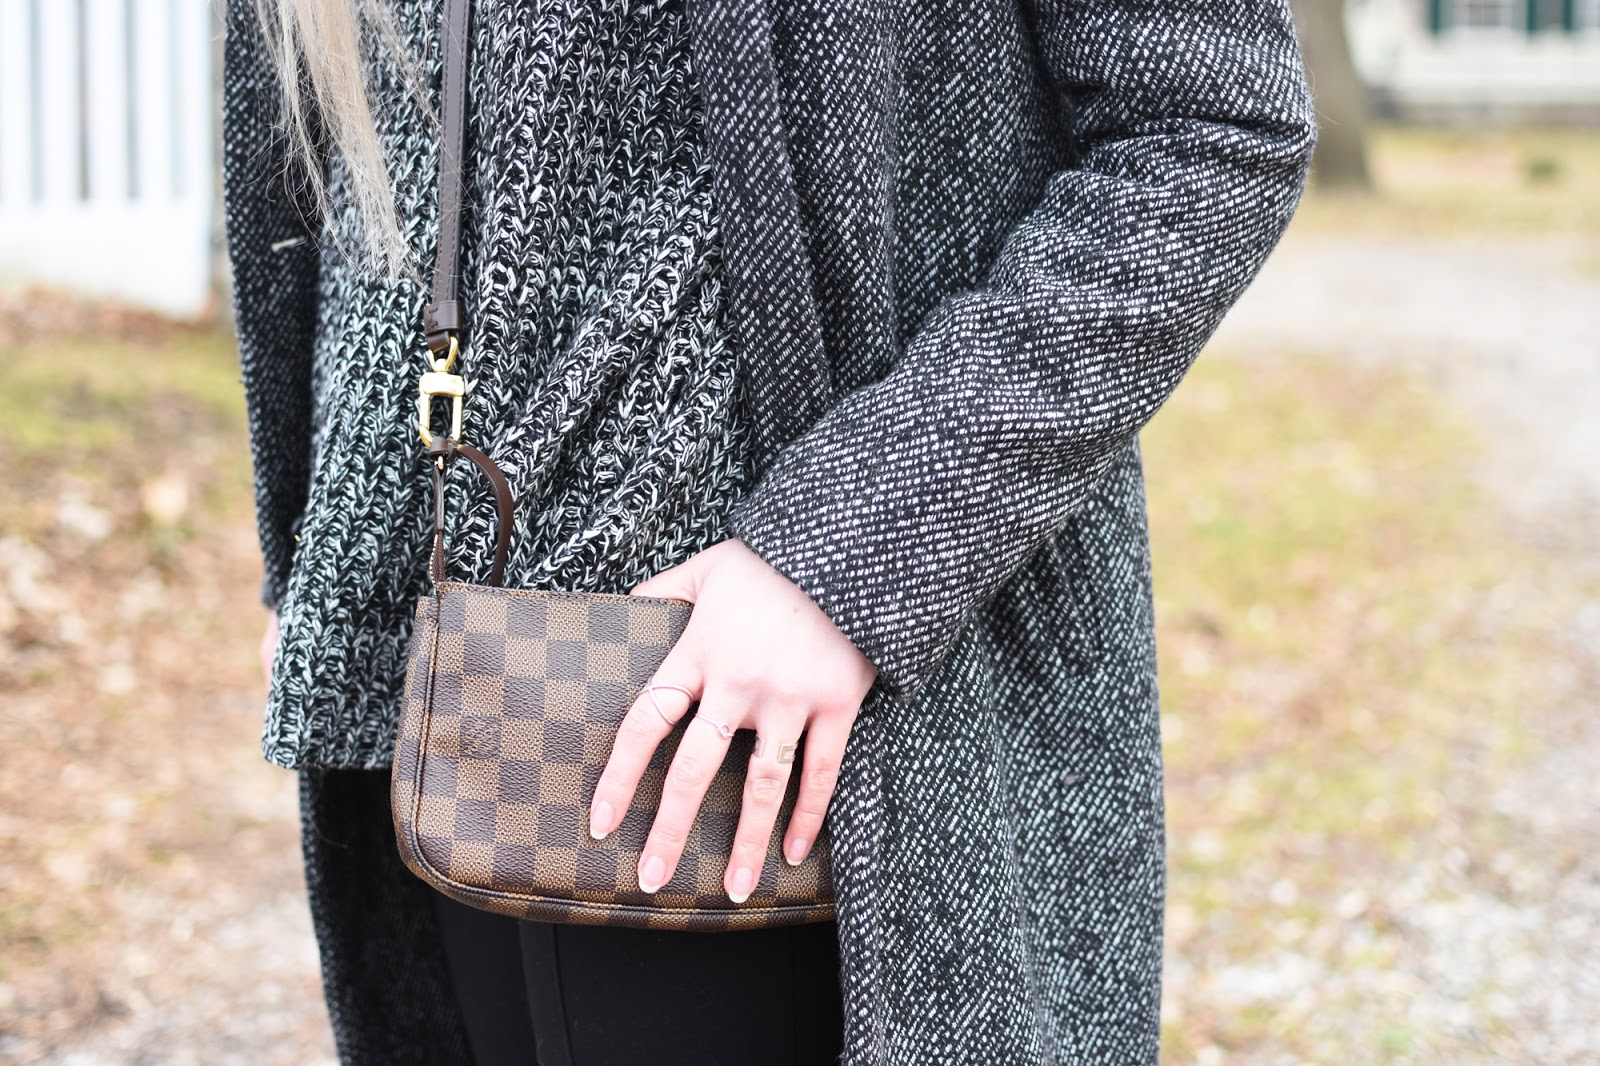 OOTD featuring a long Zara coat, Zara leggings, Zara booties, and a Romwe sweater. Louis Vuitton Pochette crossbody.